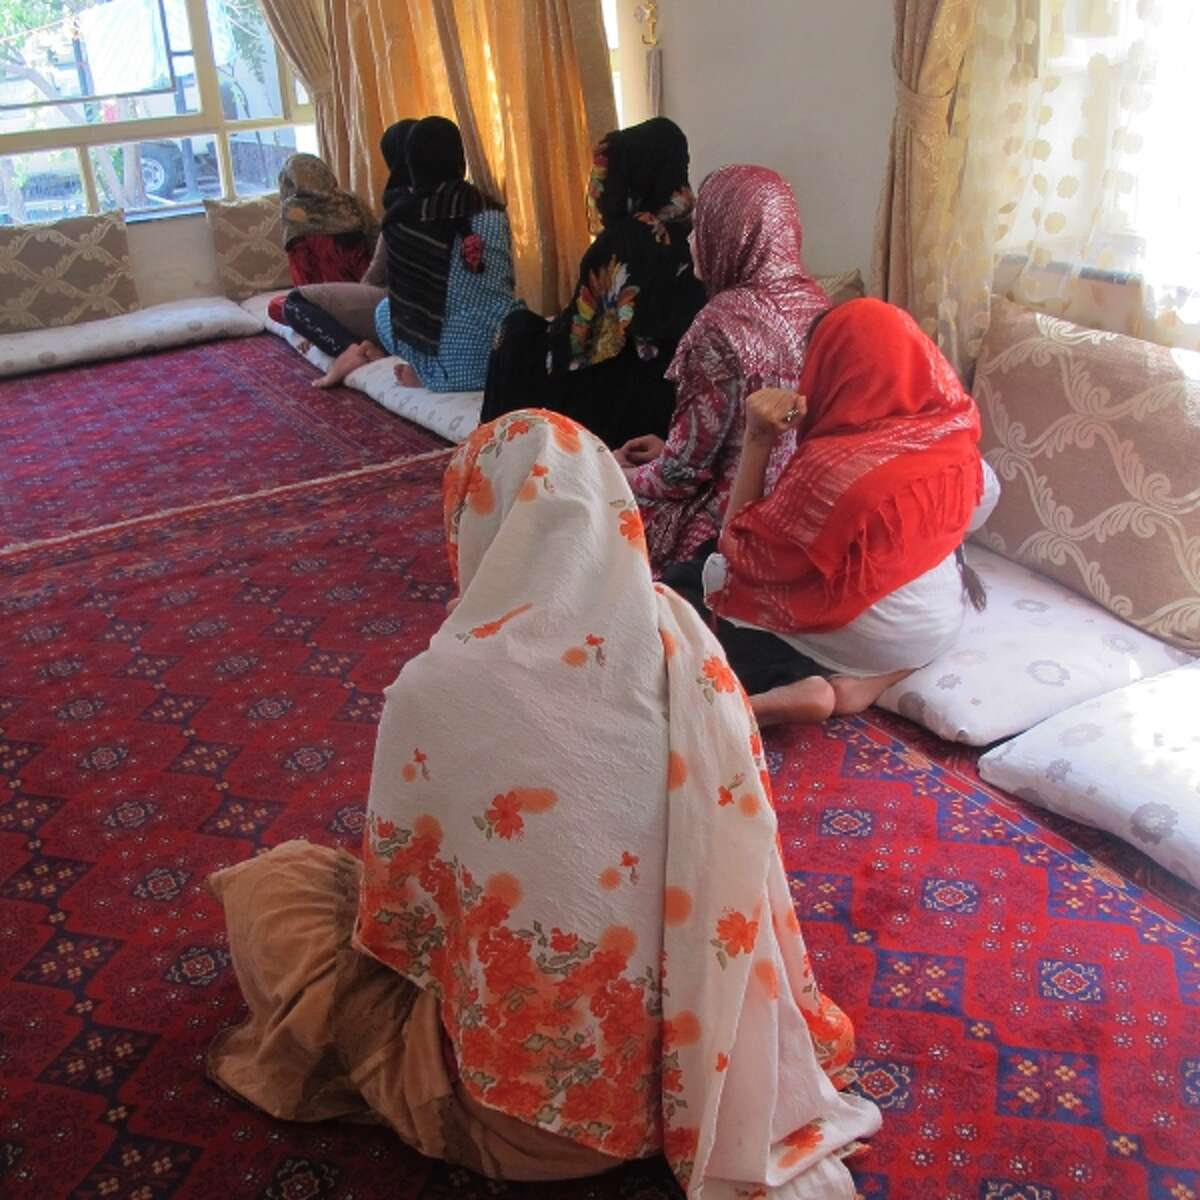 A private women's shelter in Kabul. Most women living there now fled abusive homes or forced teen-age marriages.